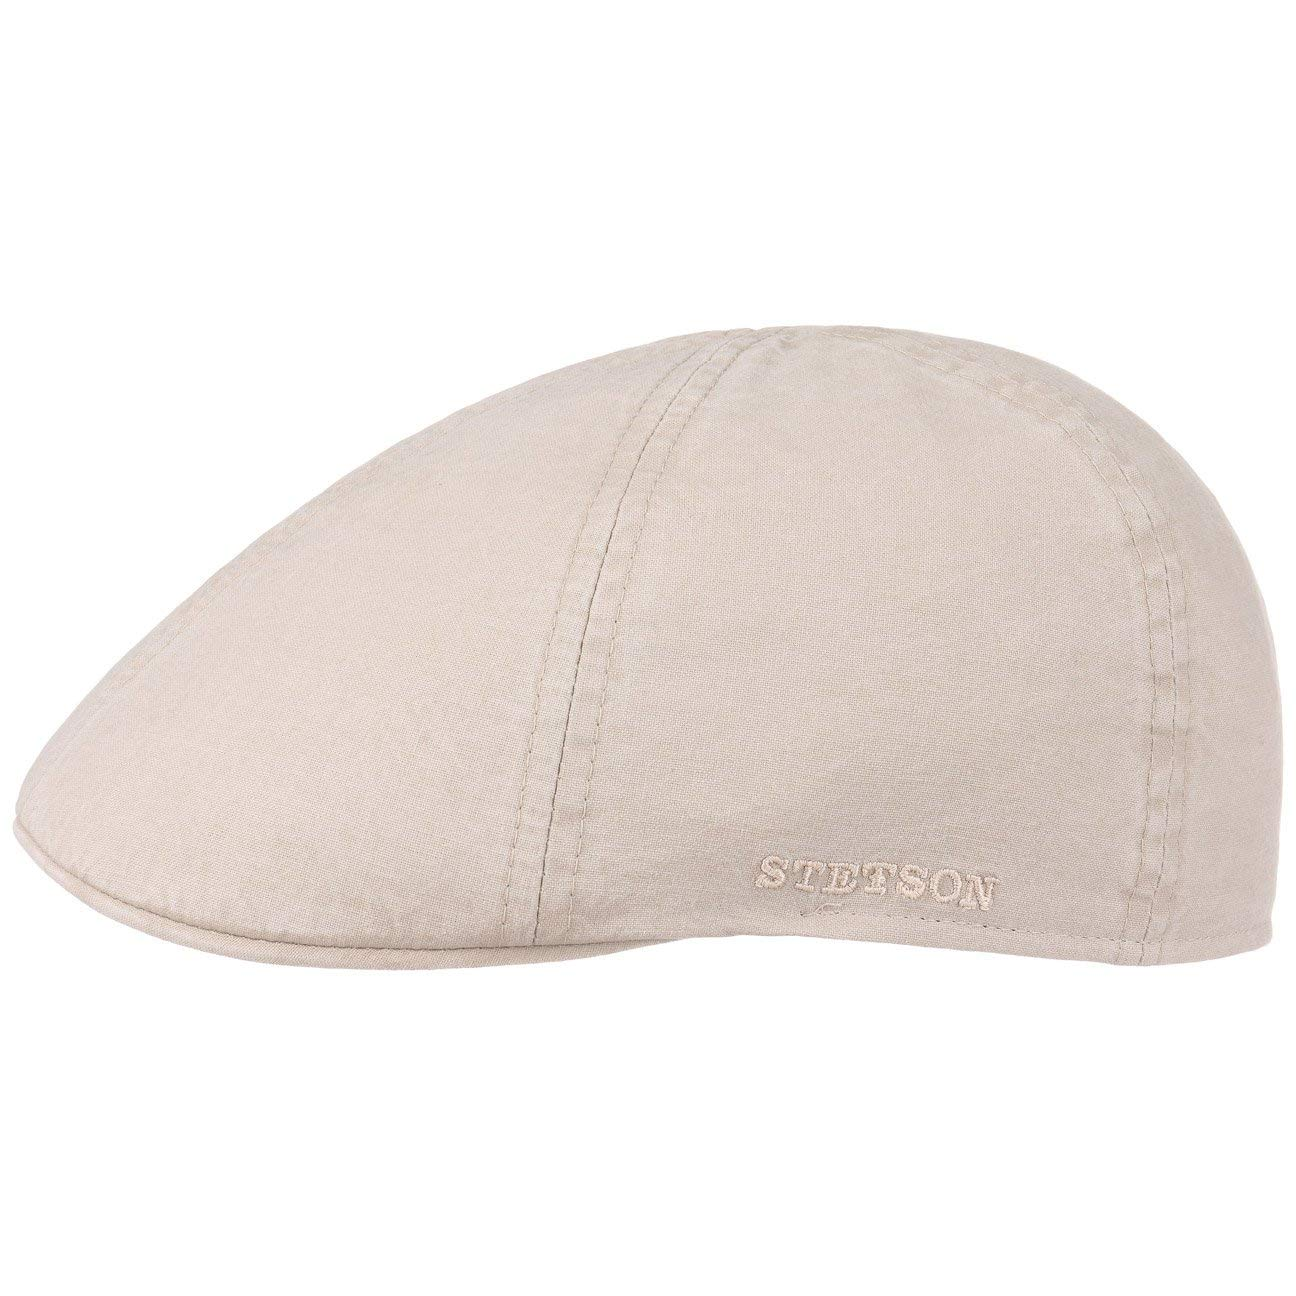 Berretto Piatto Cappello Cotton cap con Visiera Primavera//Estate Stetson Texas Coppola in Cotone Uomo